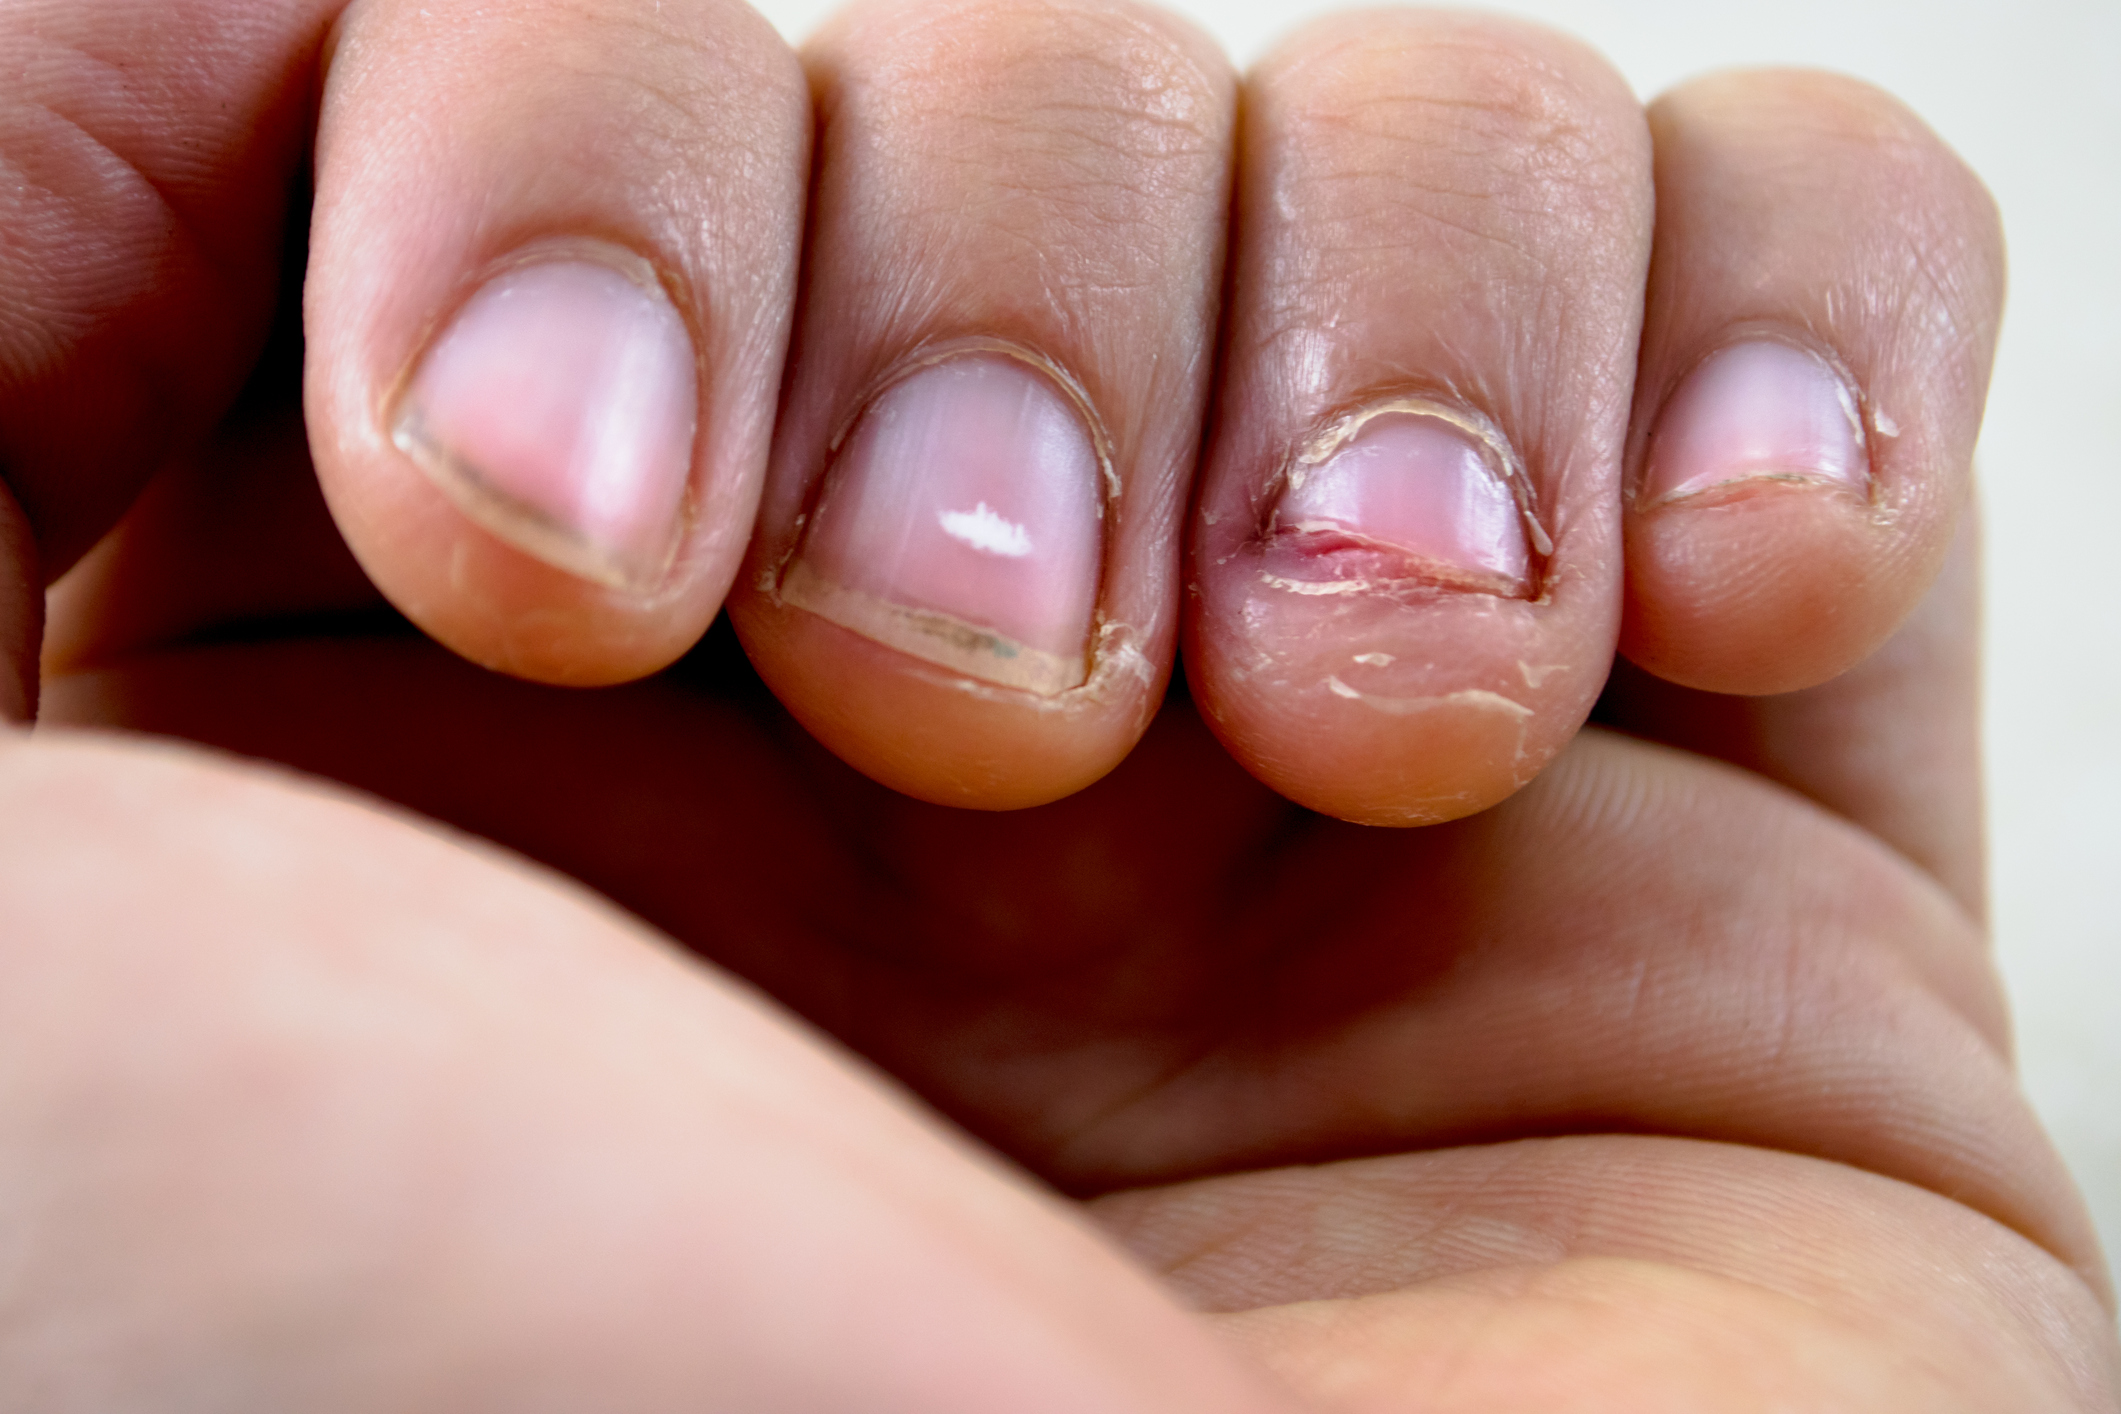 Fingernails-Vitamin-Deficiency.jpg